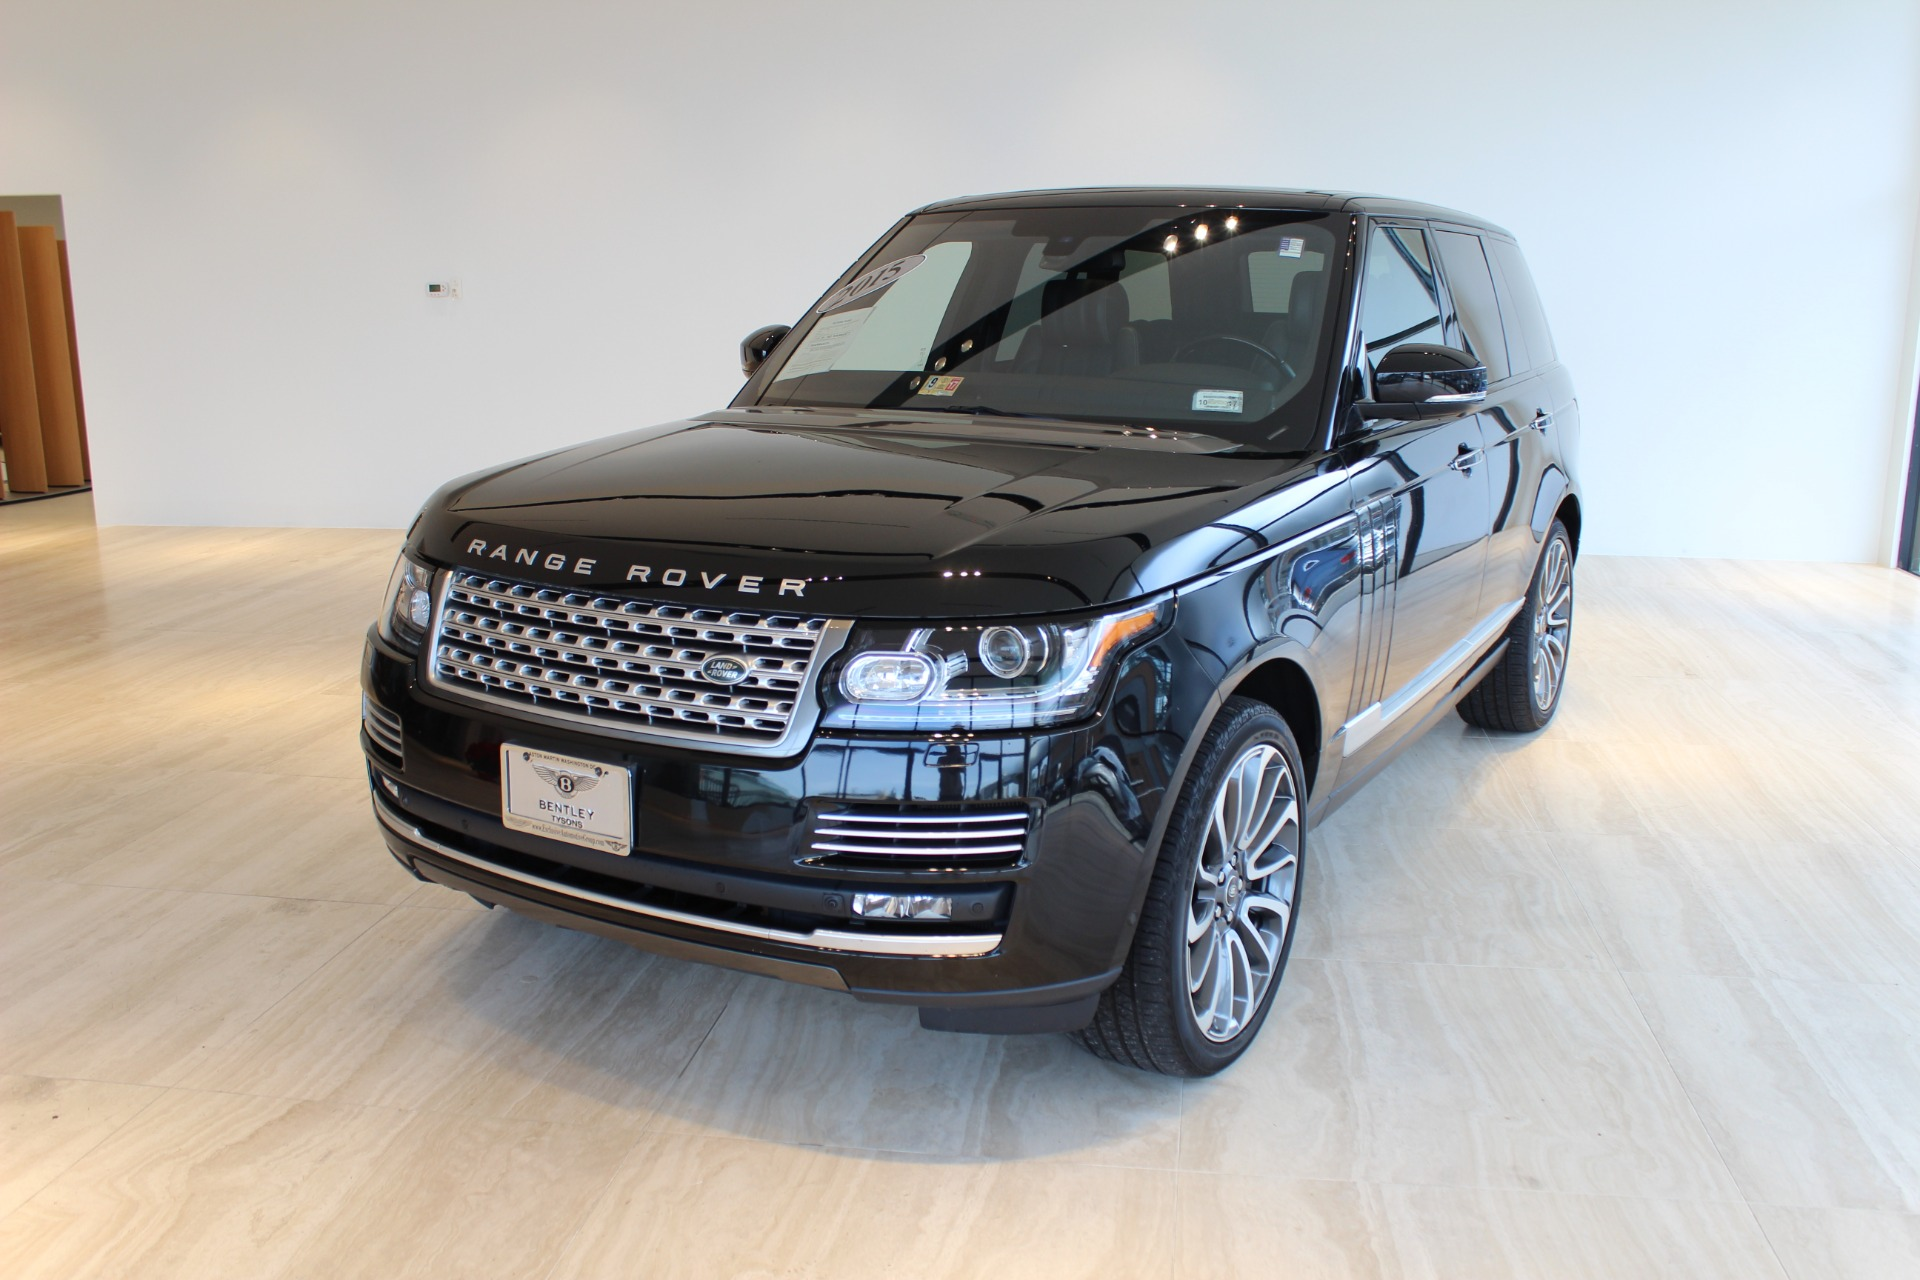 2015 Land Rover Range Rover Autobiography Stock 7N A for